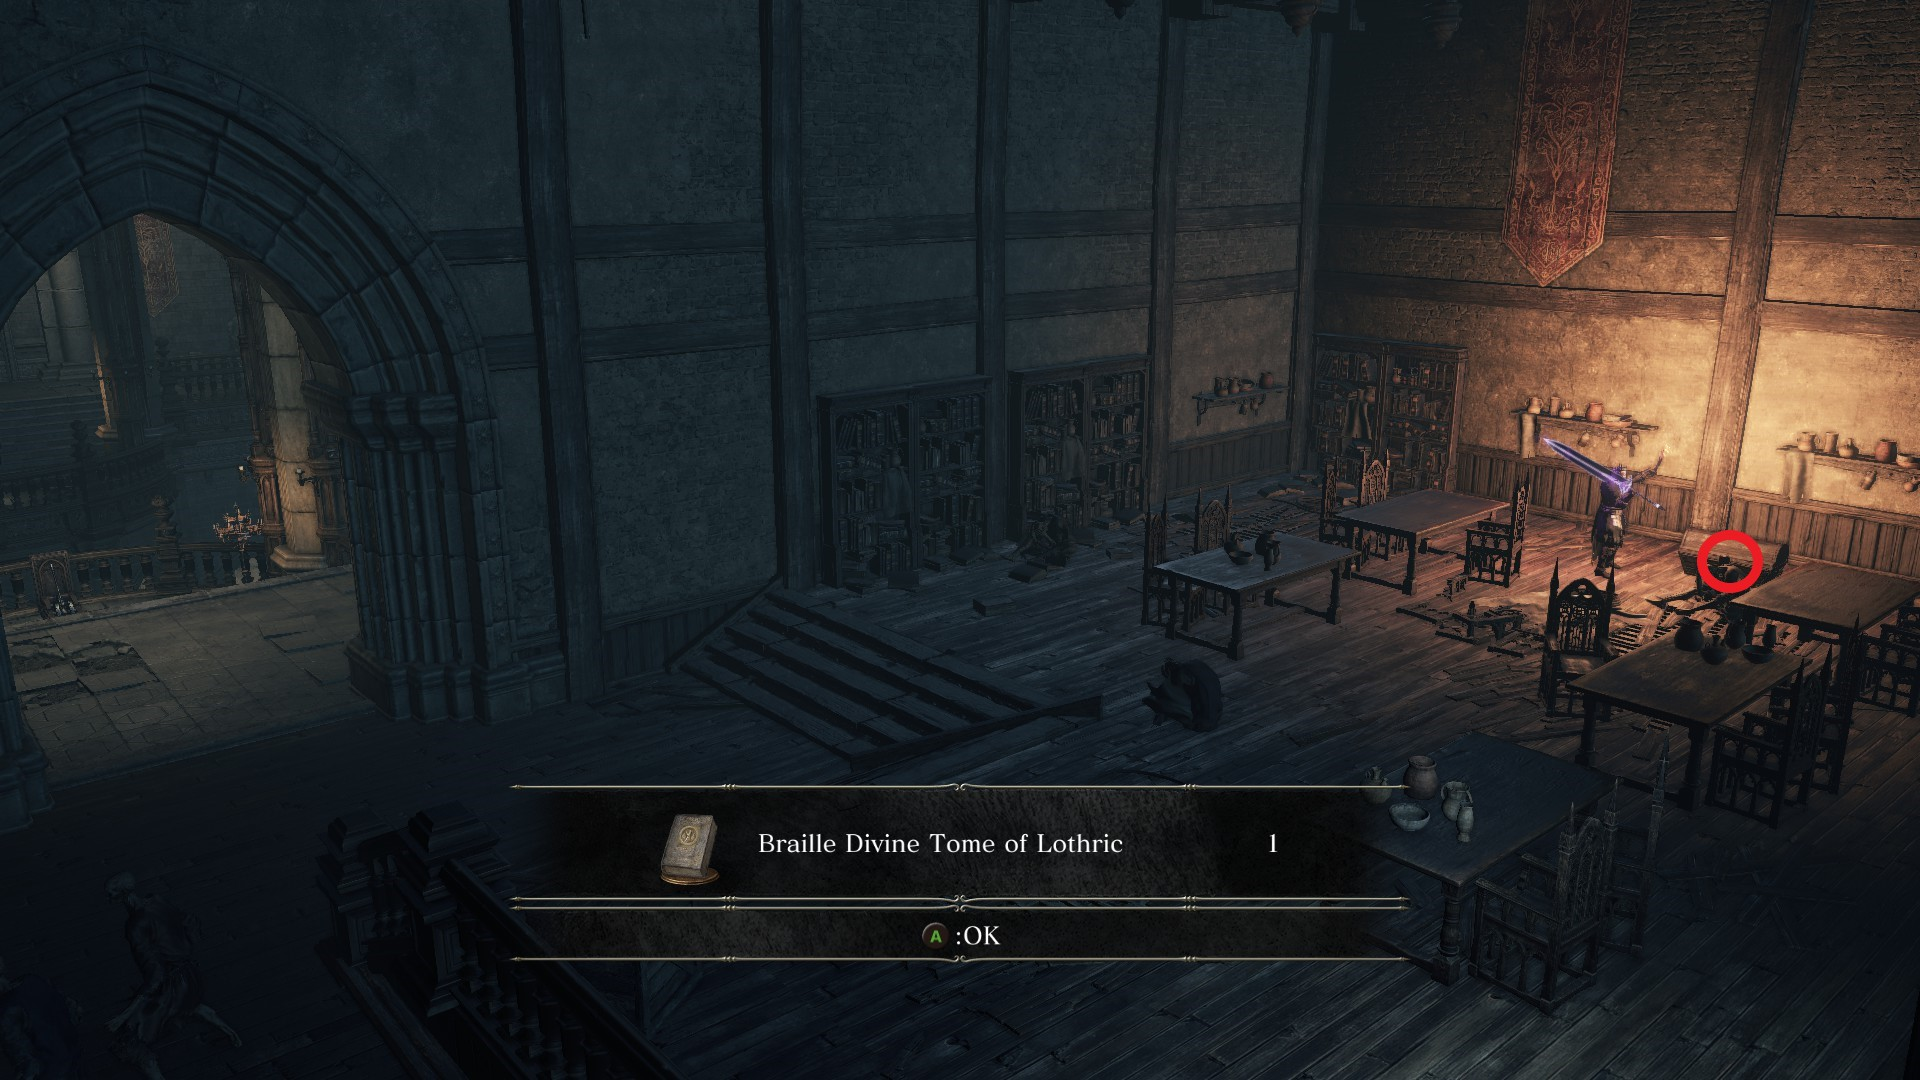 Braille_Divine_Tome_of_Lothric.jpg